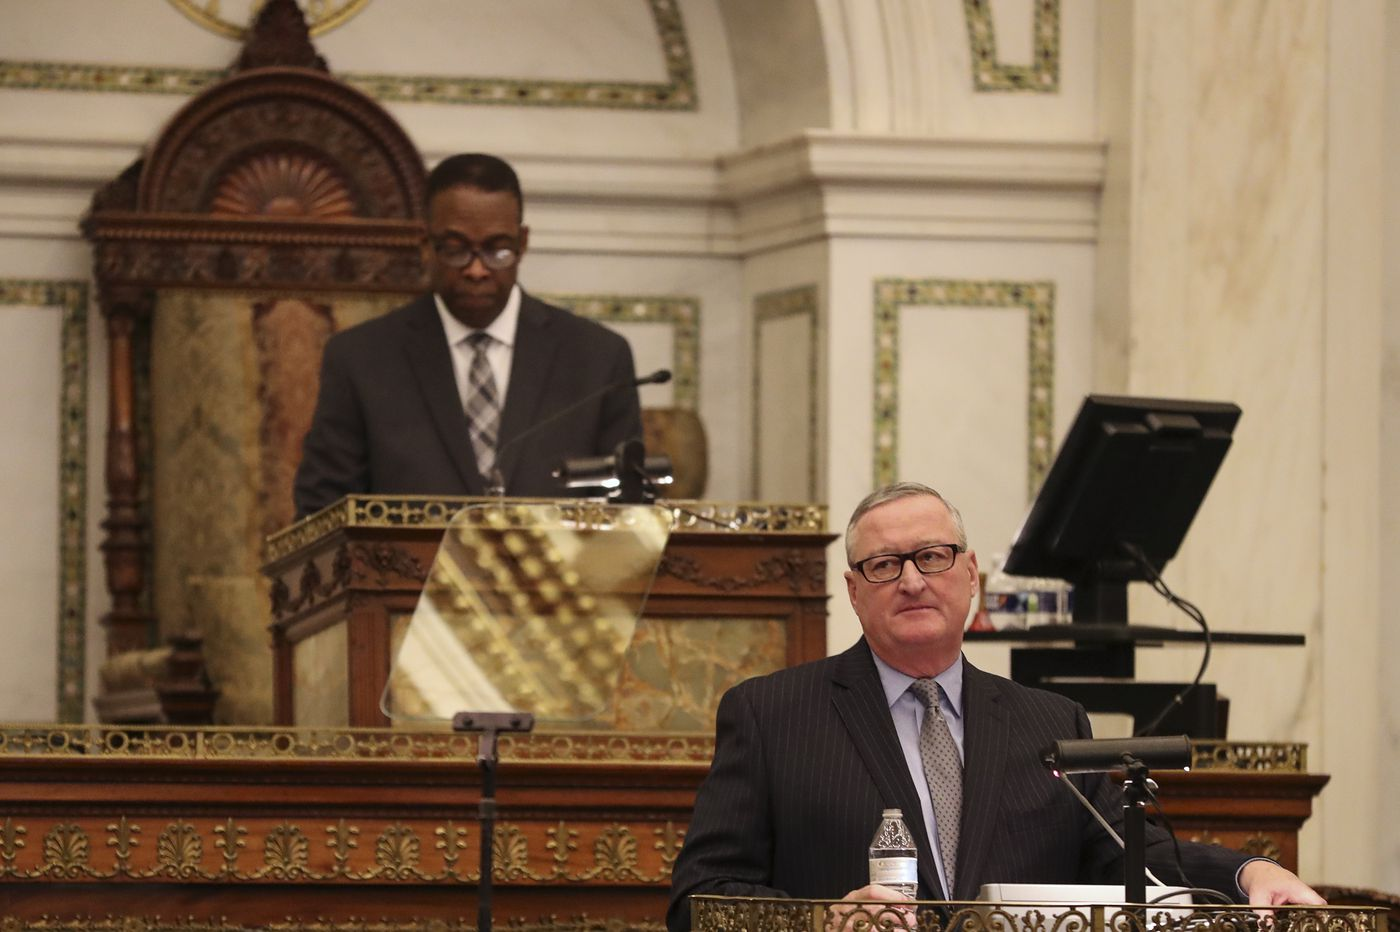 Mayor Jim Kenney proposes a $5.2 billion budget. City Council may want to tweak antipoverty plans.